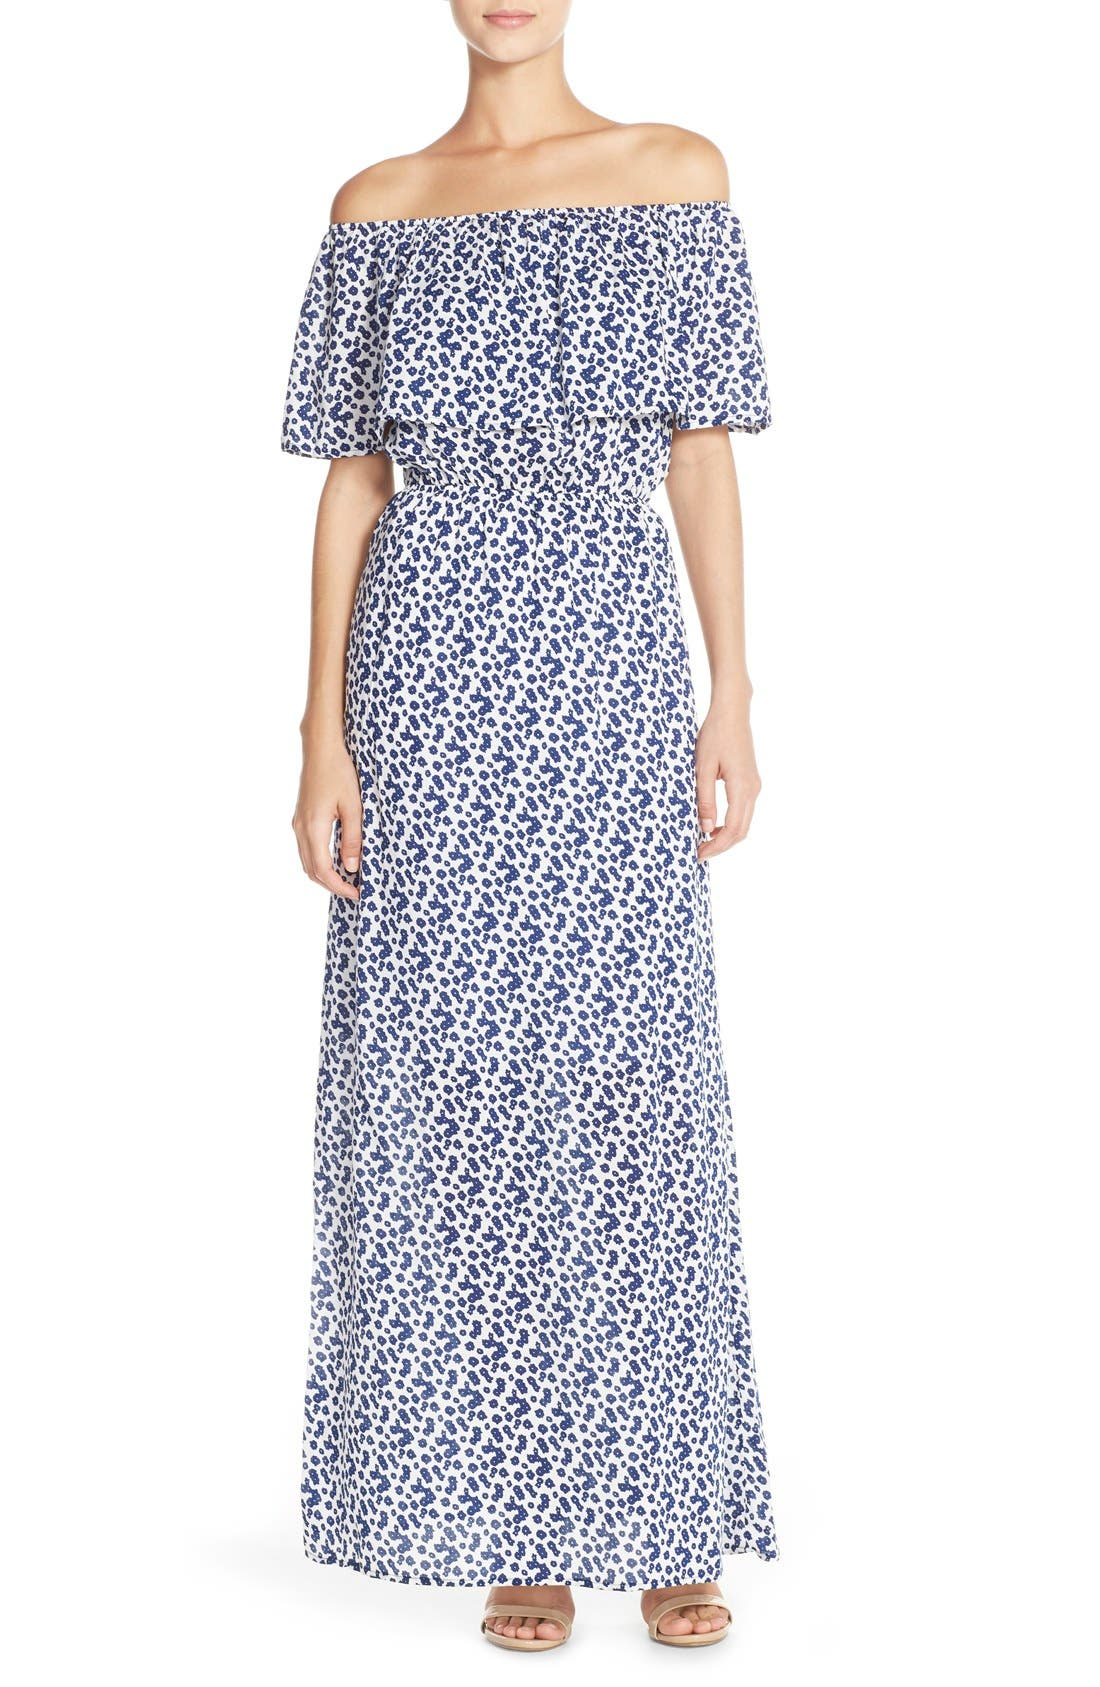 Alternate Image 1 Selected - Fraiche by J Tie Dye Off Shoulder Maxi Dress